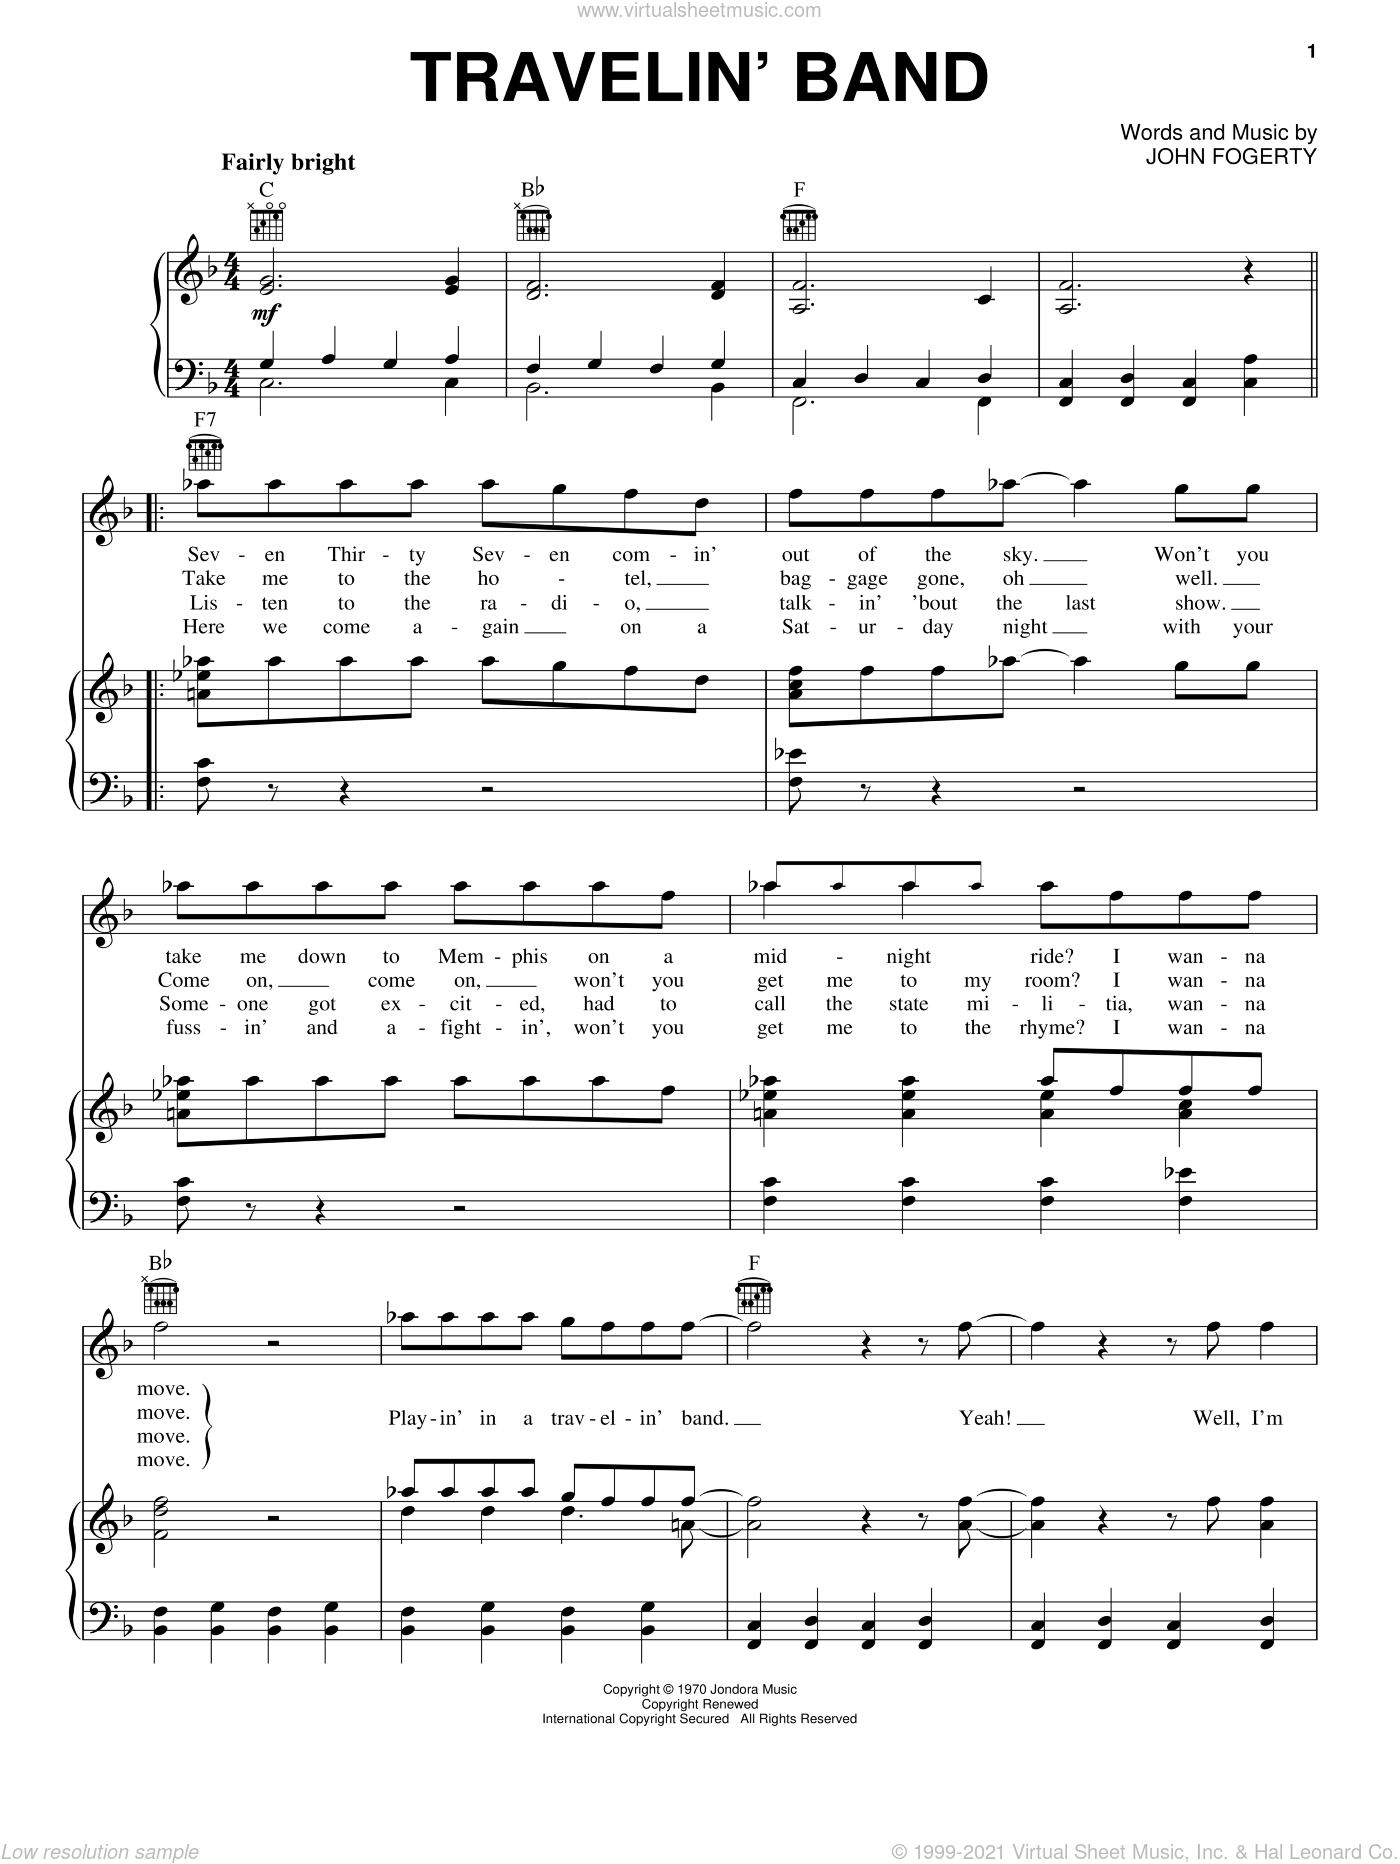 Travelin' Band sheet music for voice, piano or guitar by John Fogerty and Creedence Clearwater Revival. Score Image Preview.